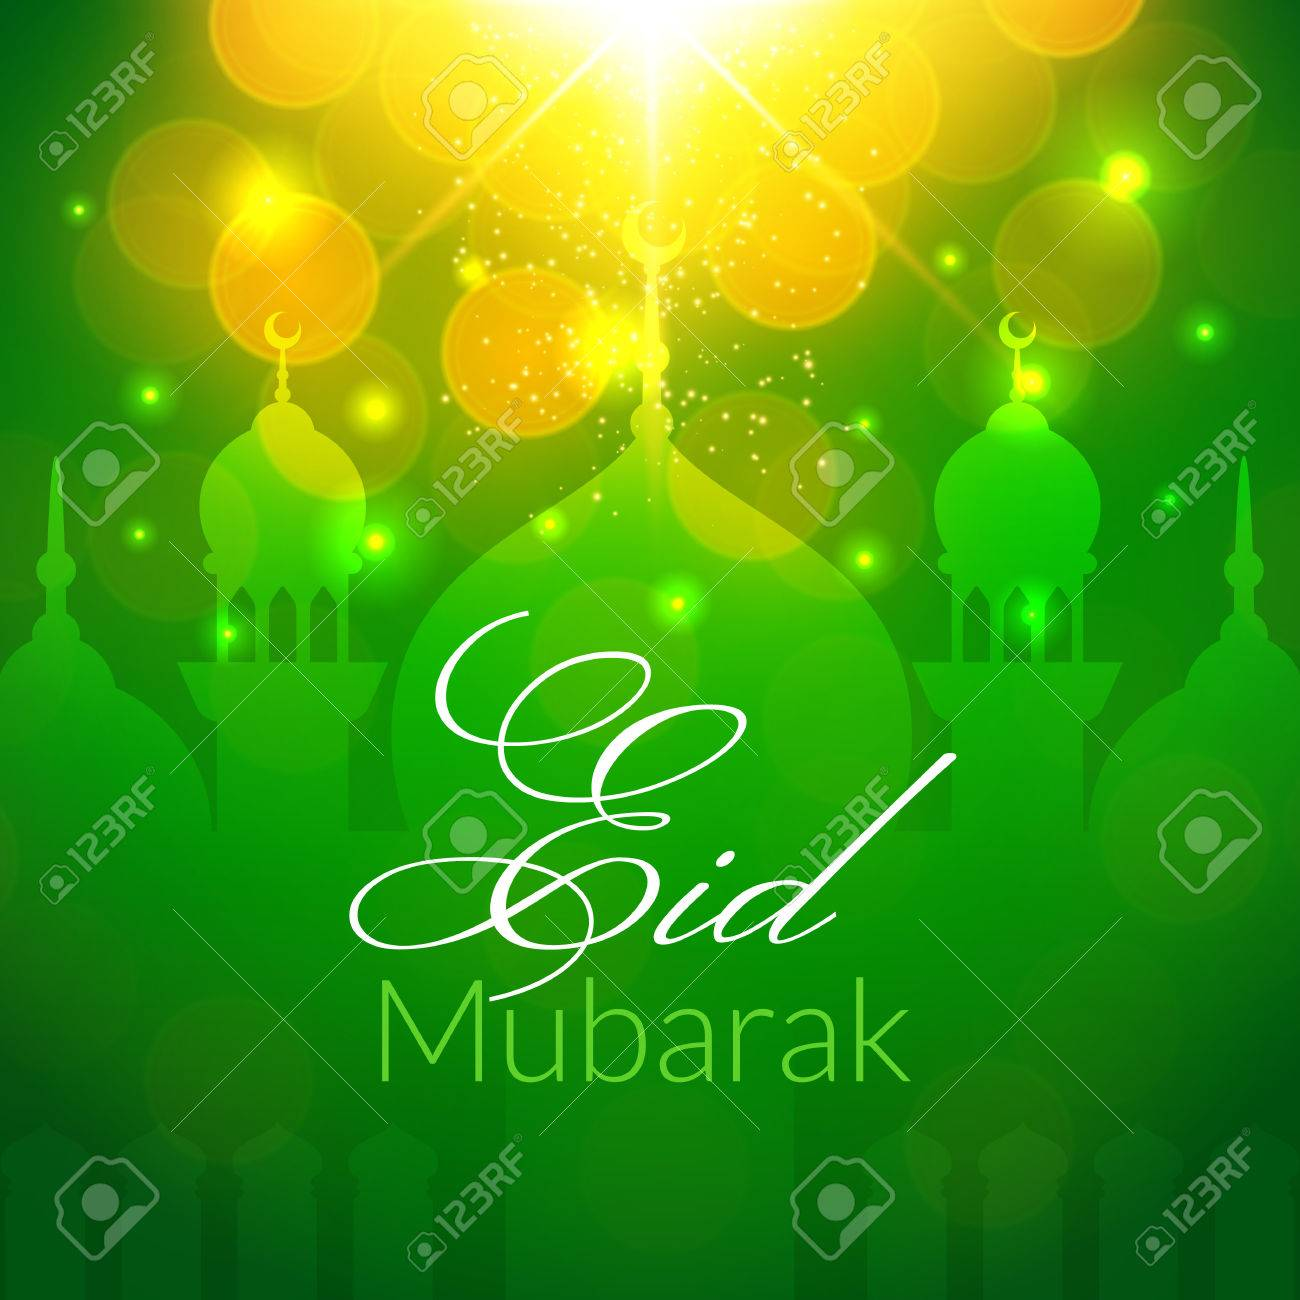 Eid Mubarak Greeting Card With Mosque And Lights Vector Festive Islamic Background Stock